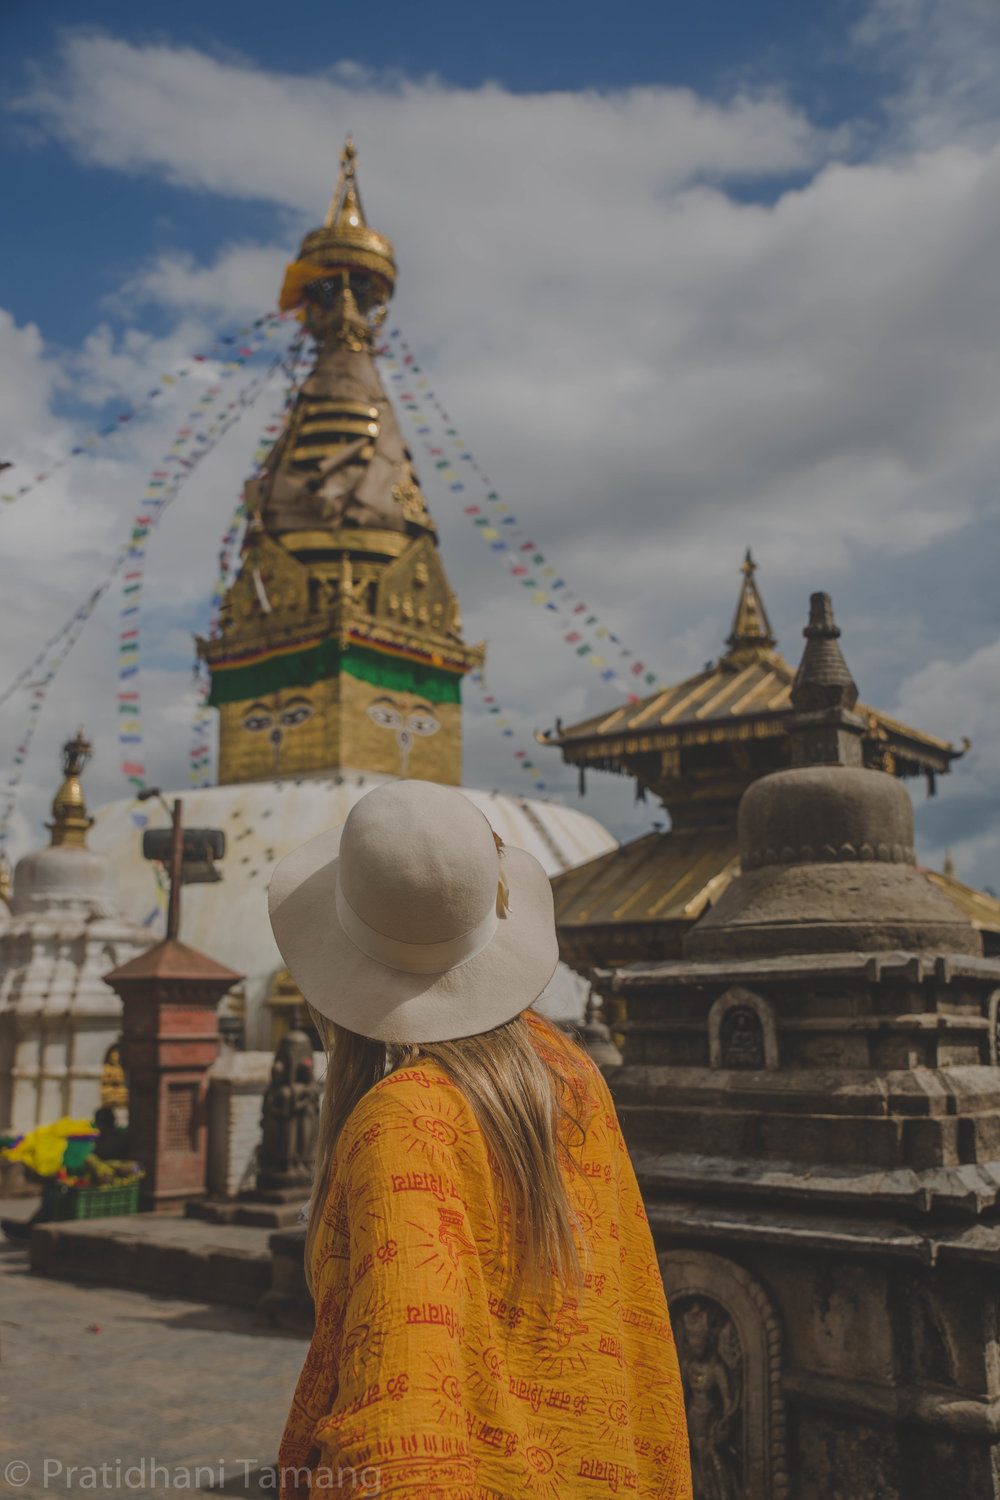 Swayambhunath, commonly known as Monkey temple.